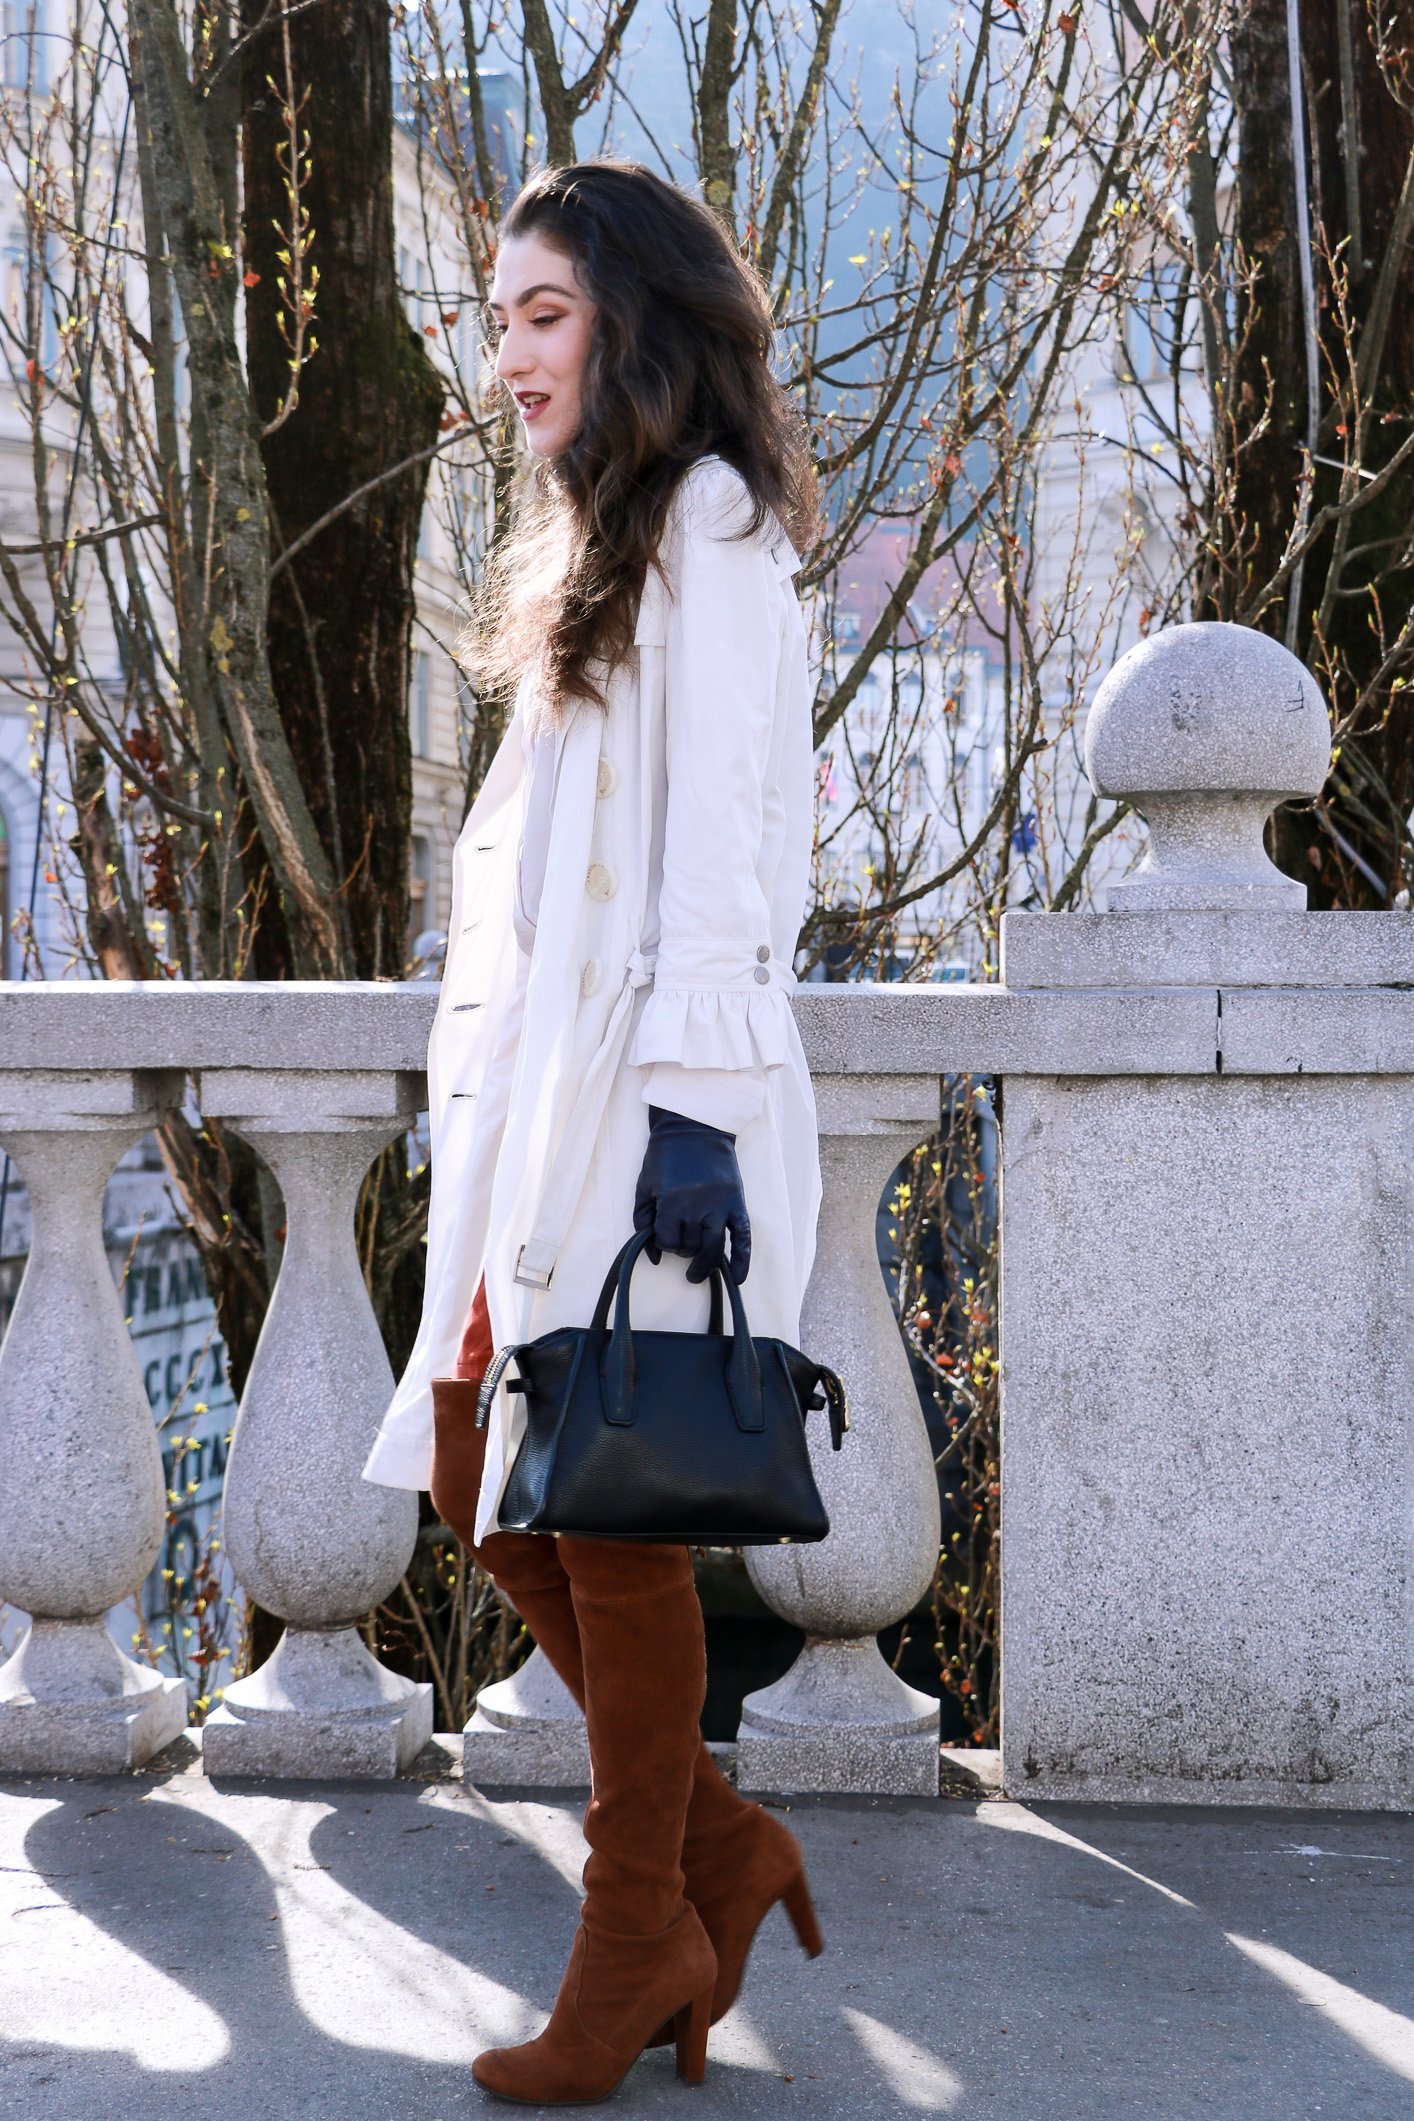 Fashion blogger Veronika Lipar of Brunette From Wall Street on how to wear robe on the street this spring